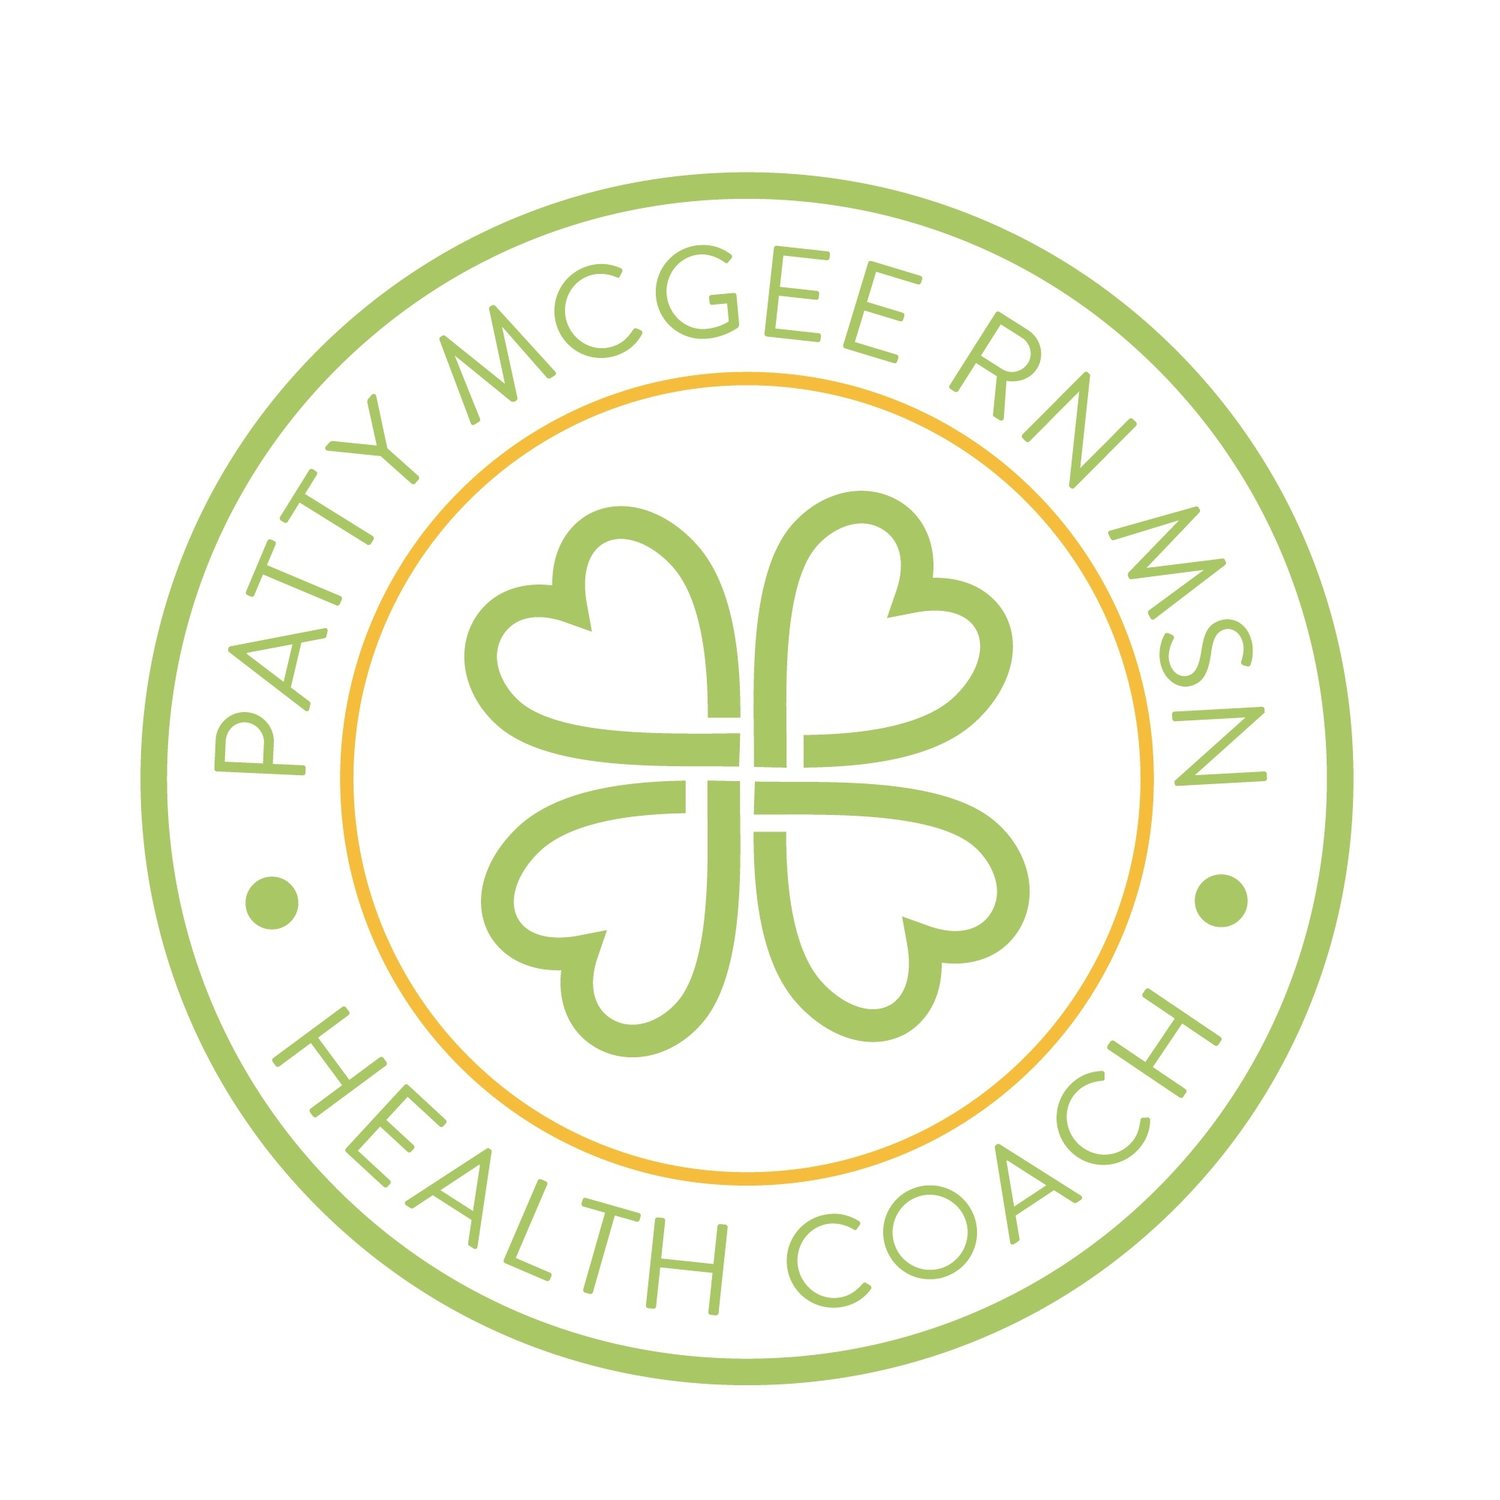 PATTY MCGEE, RN MSN HEALTH COACH